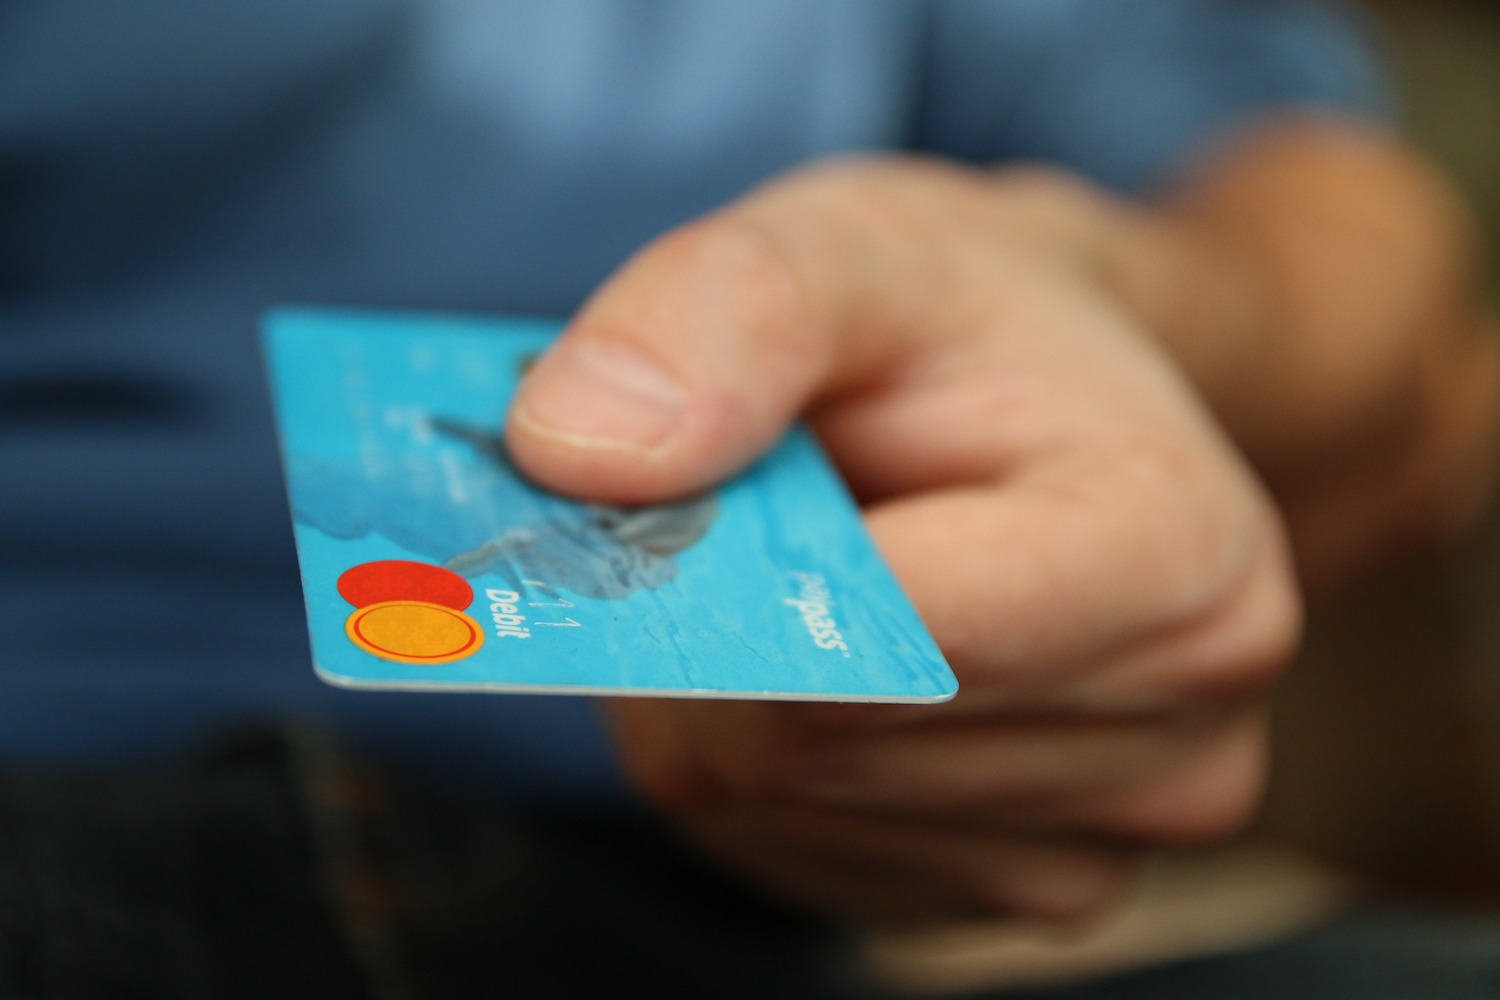 Person's hand, holding a debit card